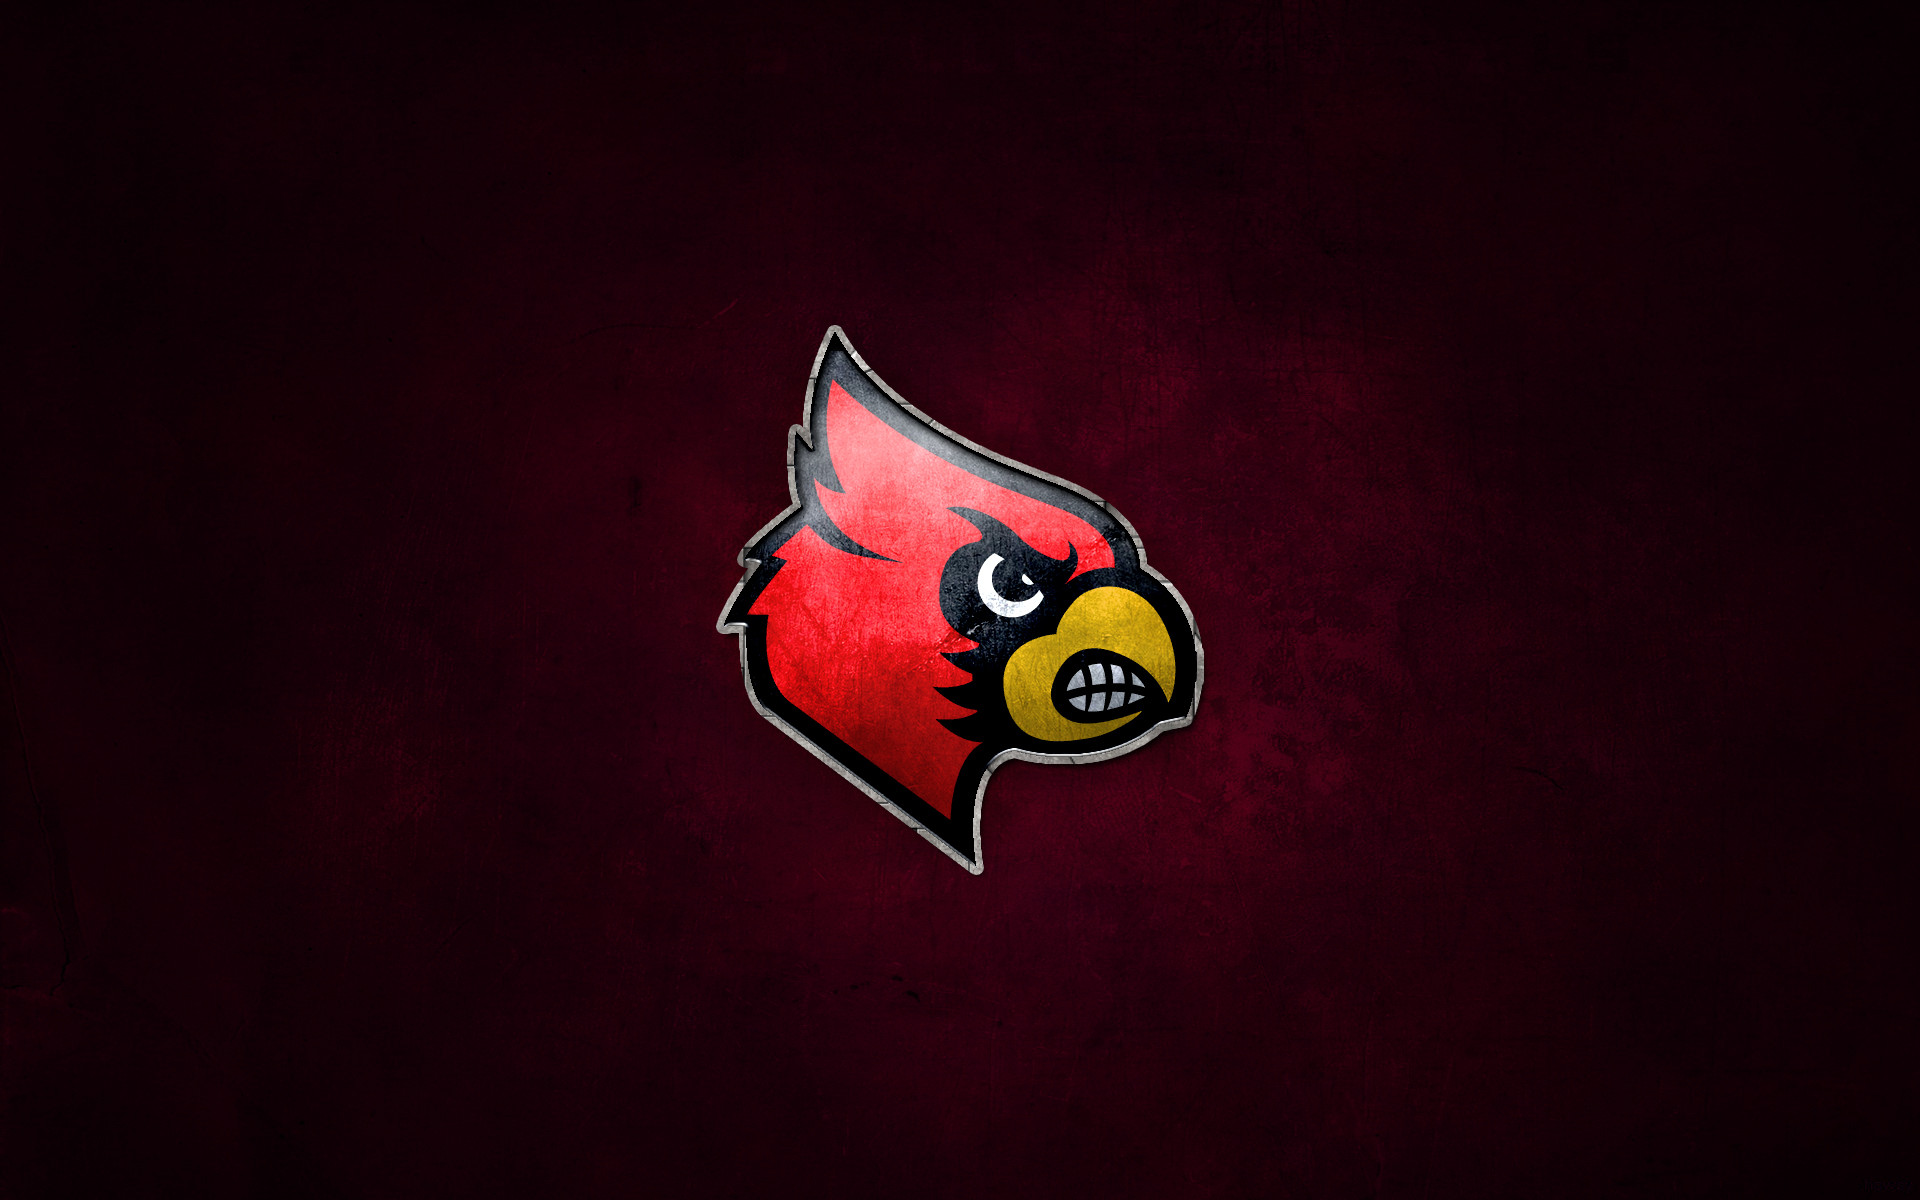 Res: 1920x1200, Covered In Red   All Your UofL Design Needs   Page 3